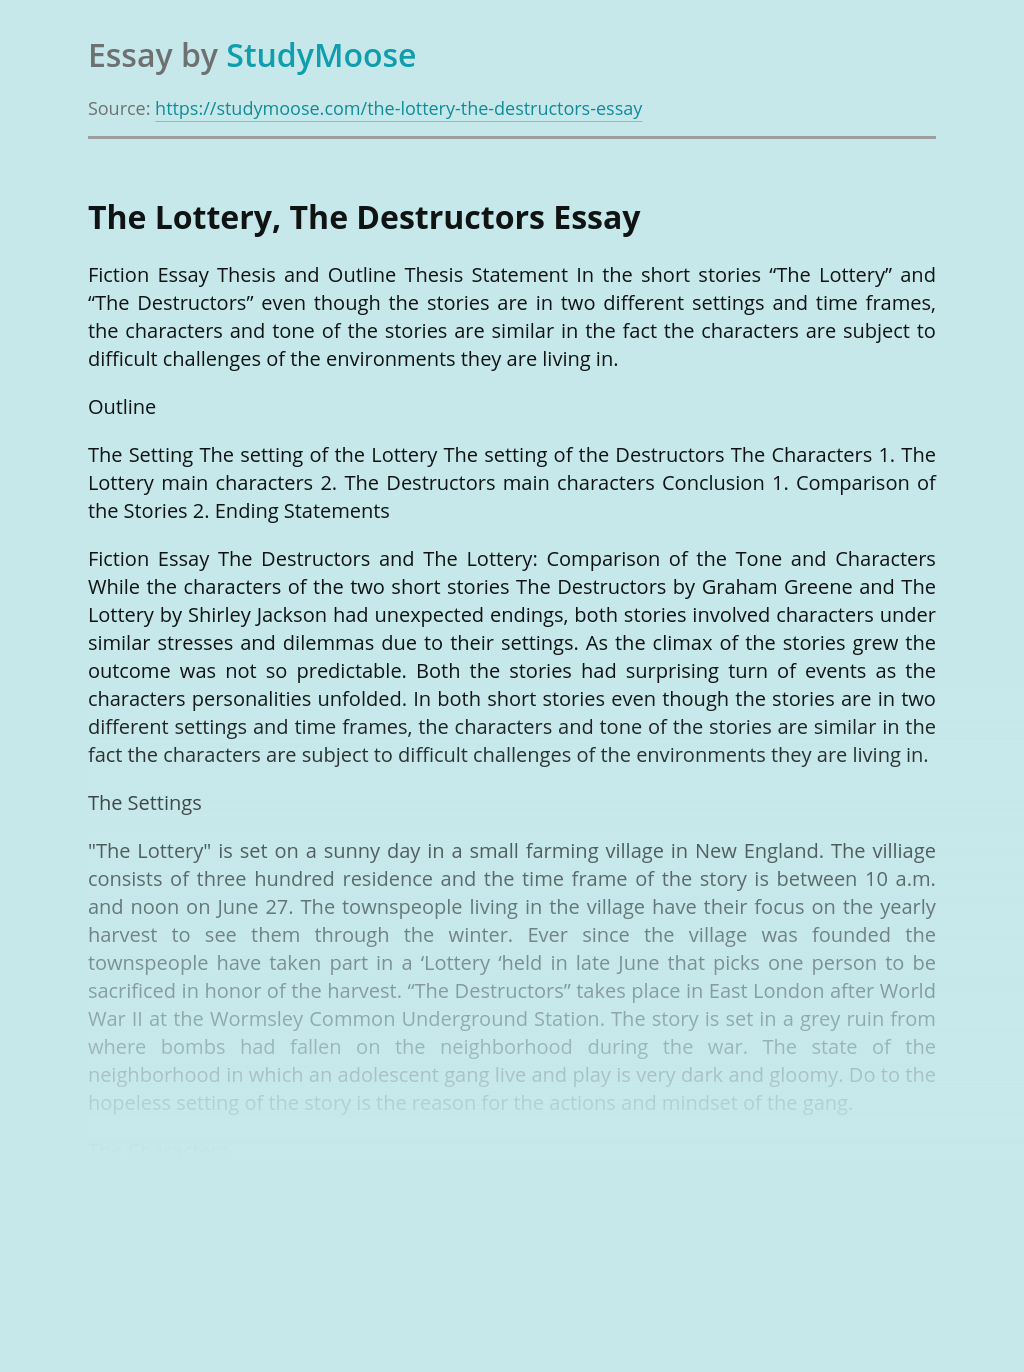 The Lottery, The Destructors